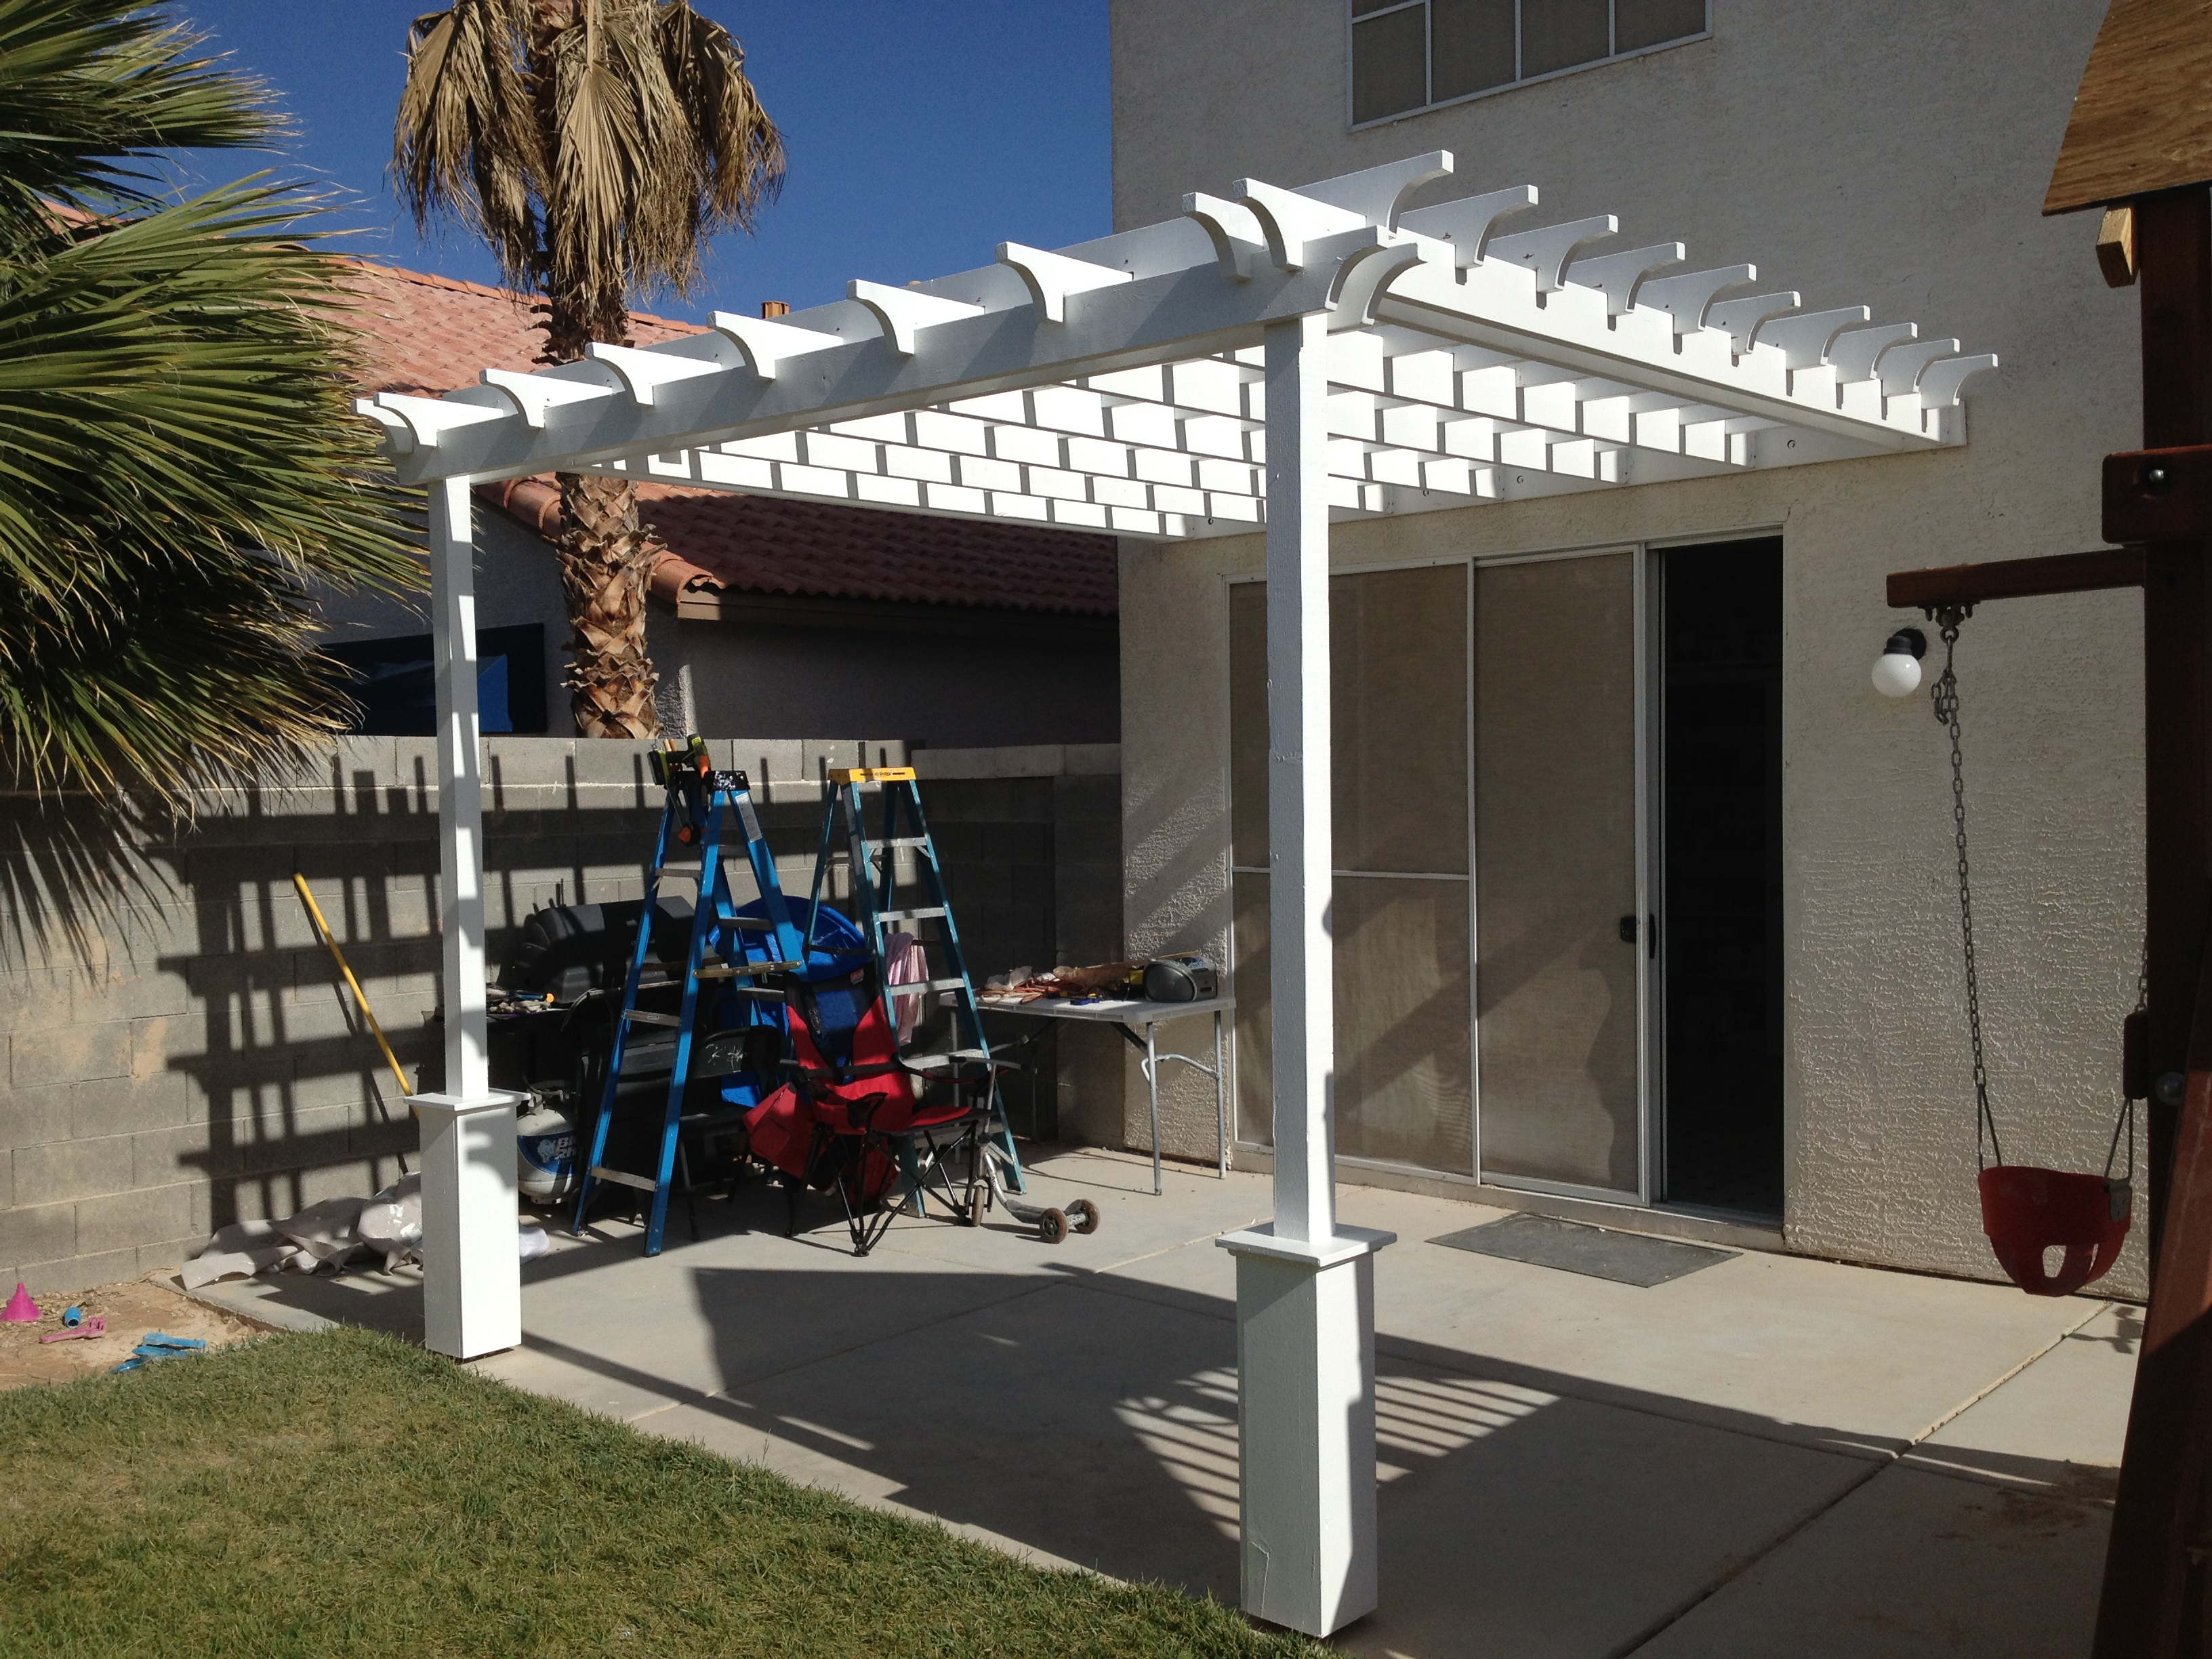 Ana white pergola attached directly to the house diy projects pergola attached directly to the house solutioingenieria Choice Image